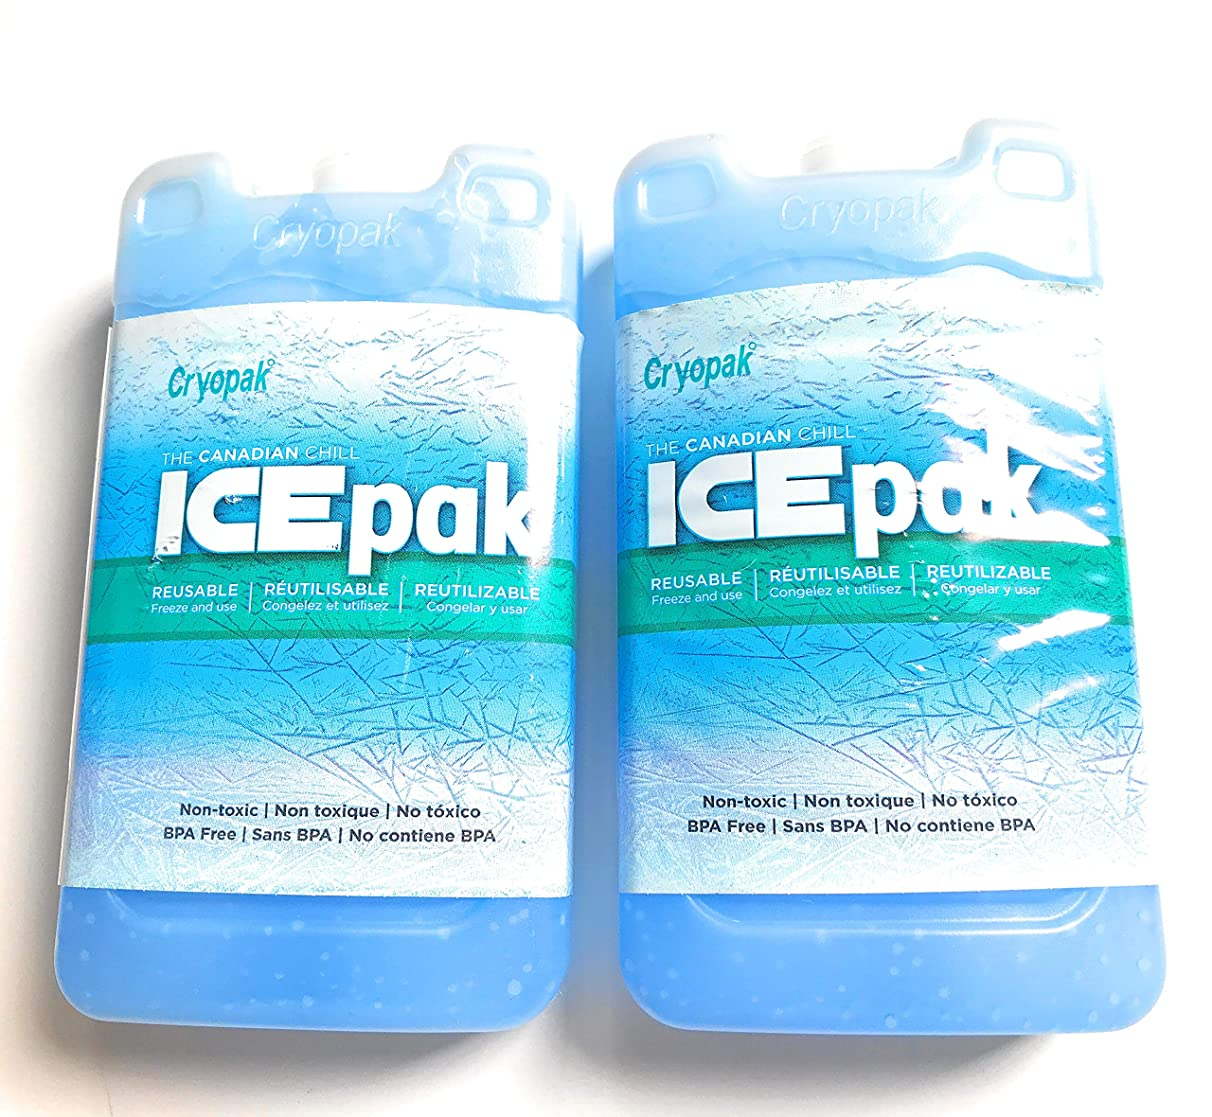 Cryopak Medium Size Hard Shell Ice Packs - Set of 2 Ice Packs - 7 Inches Tall X 4 Inches Wide X 1 Inches Deep - Perfect Ice Packs for Coolers - Great Value!